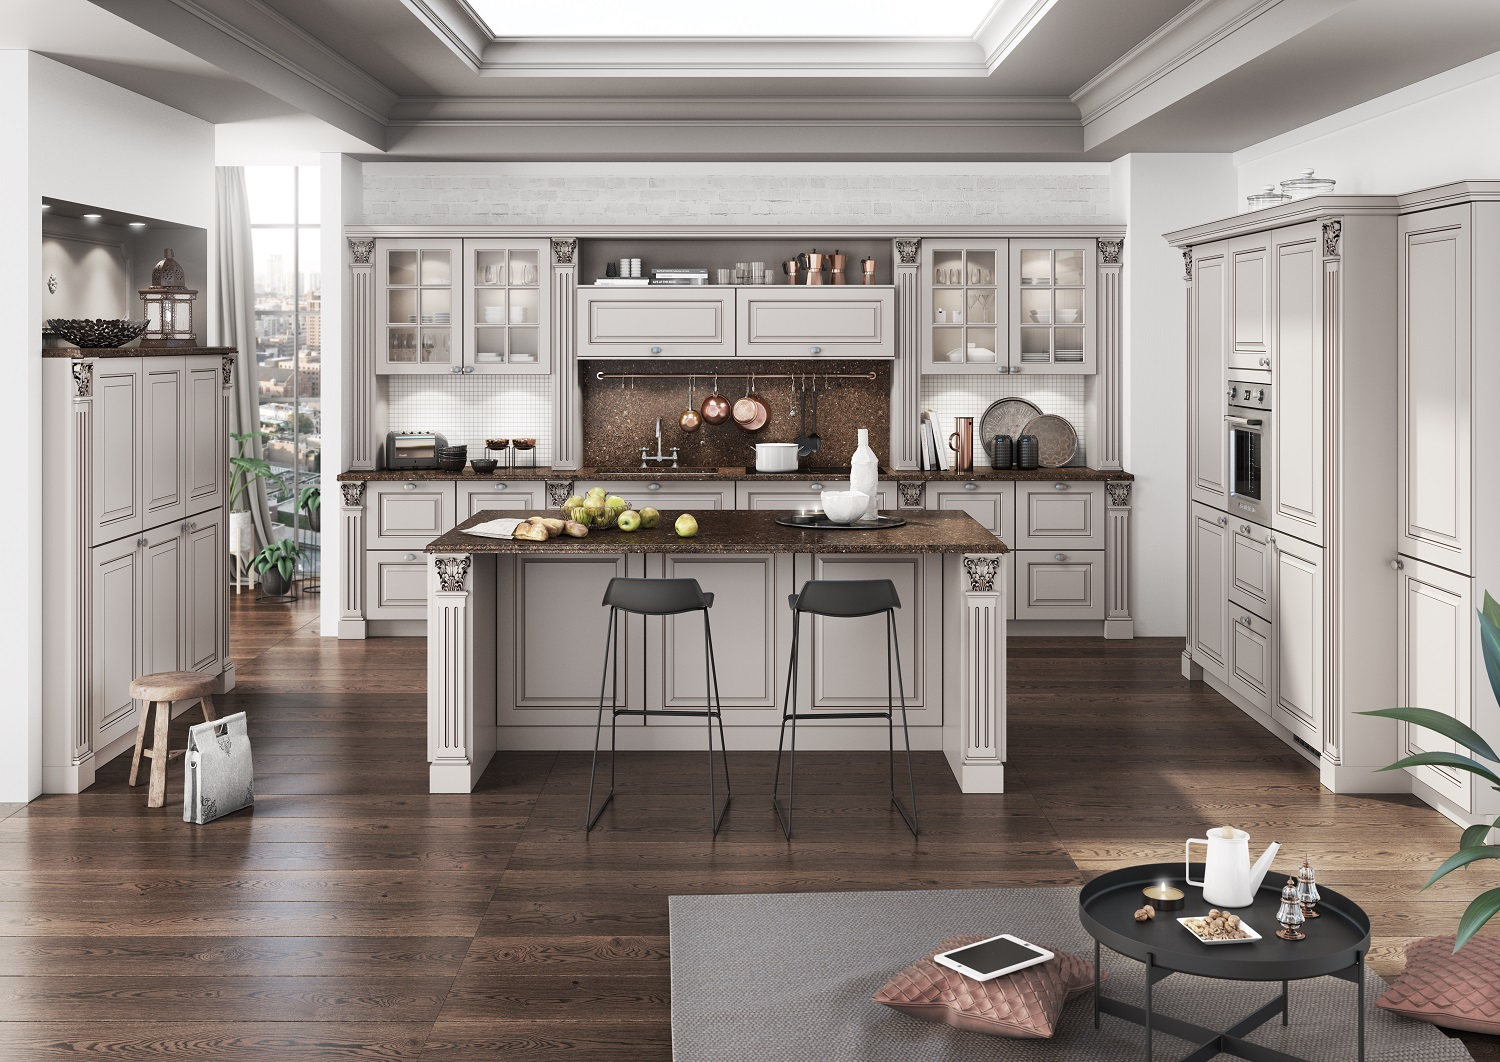 Classic White Luxury Kitchen By Bauformat With Gold Patina